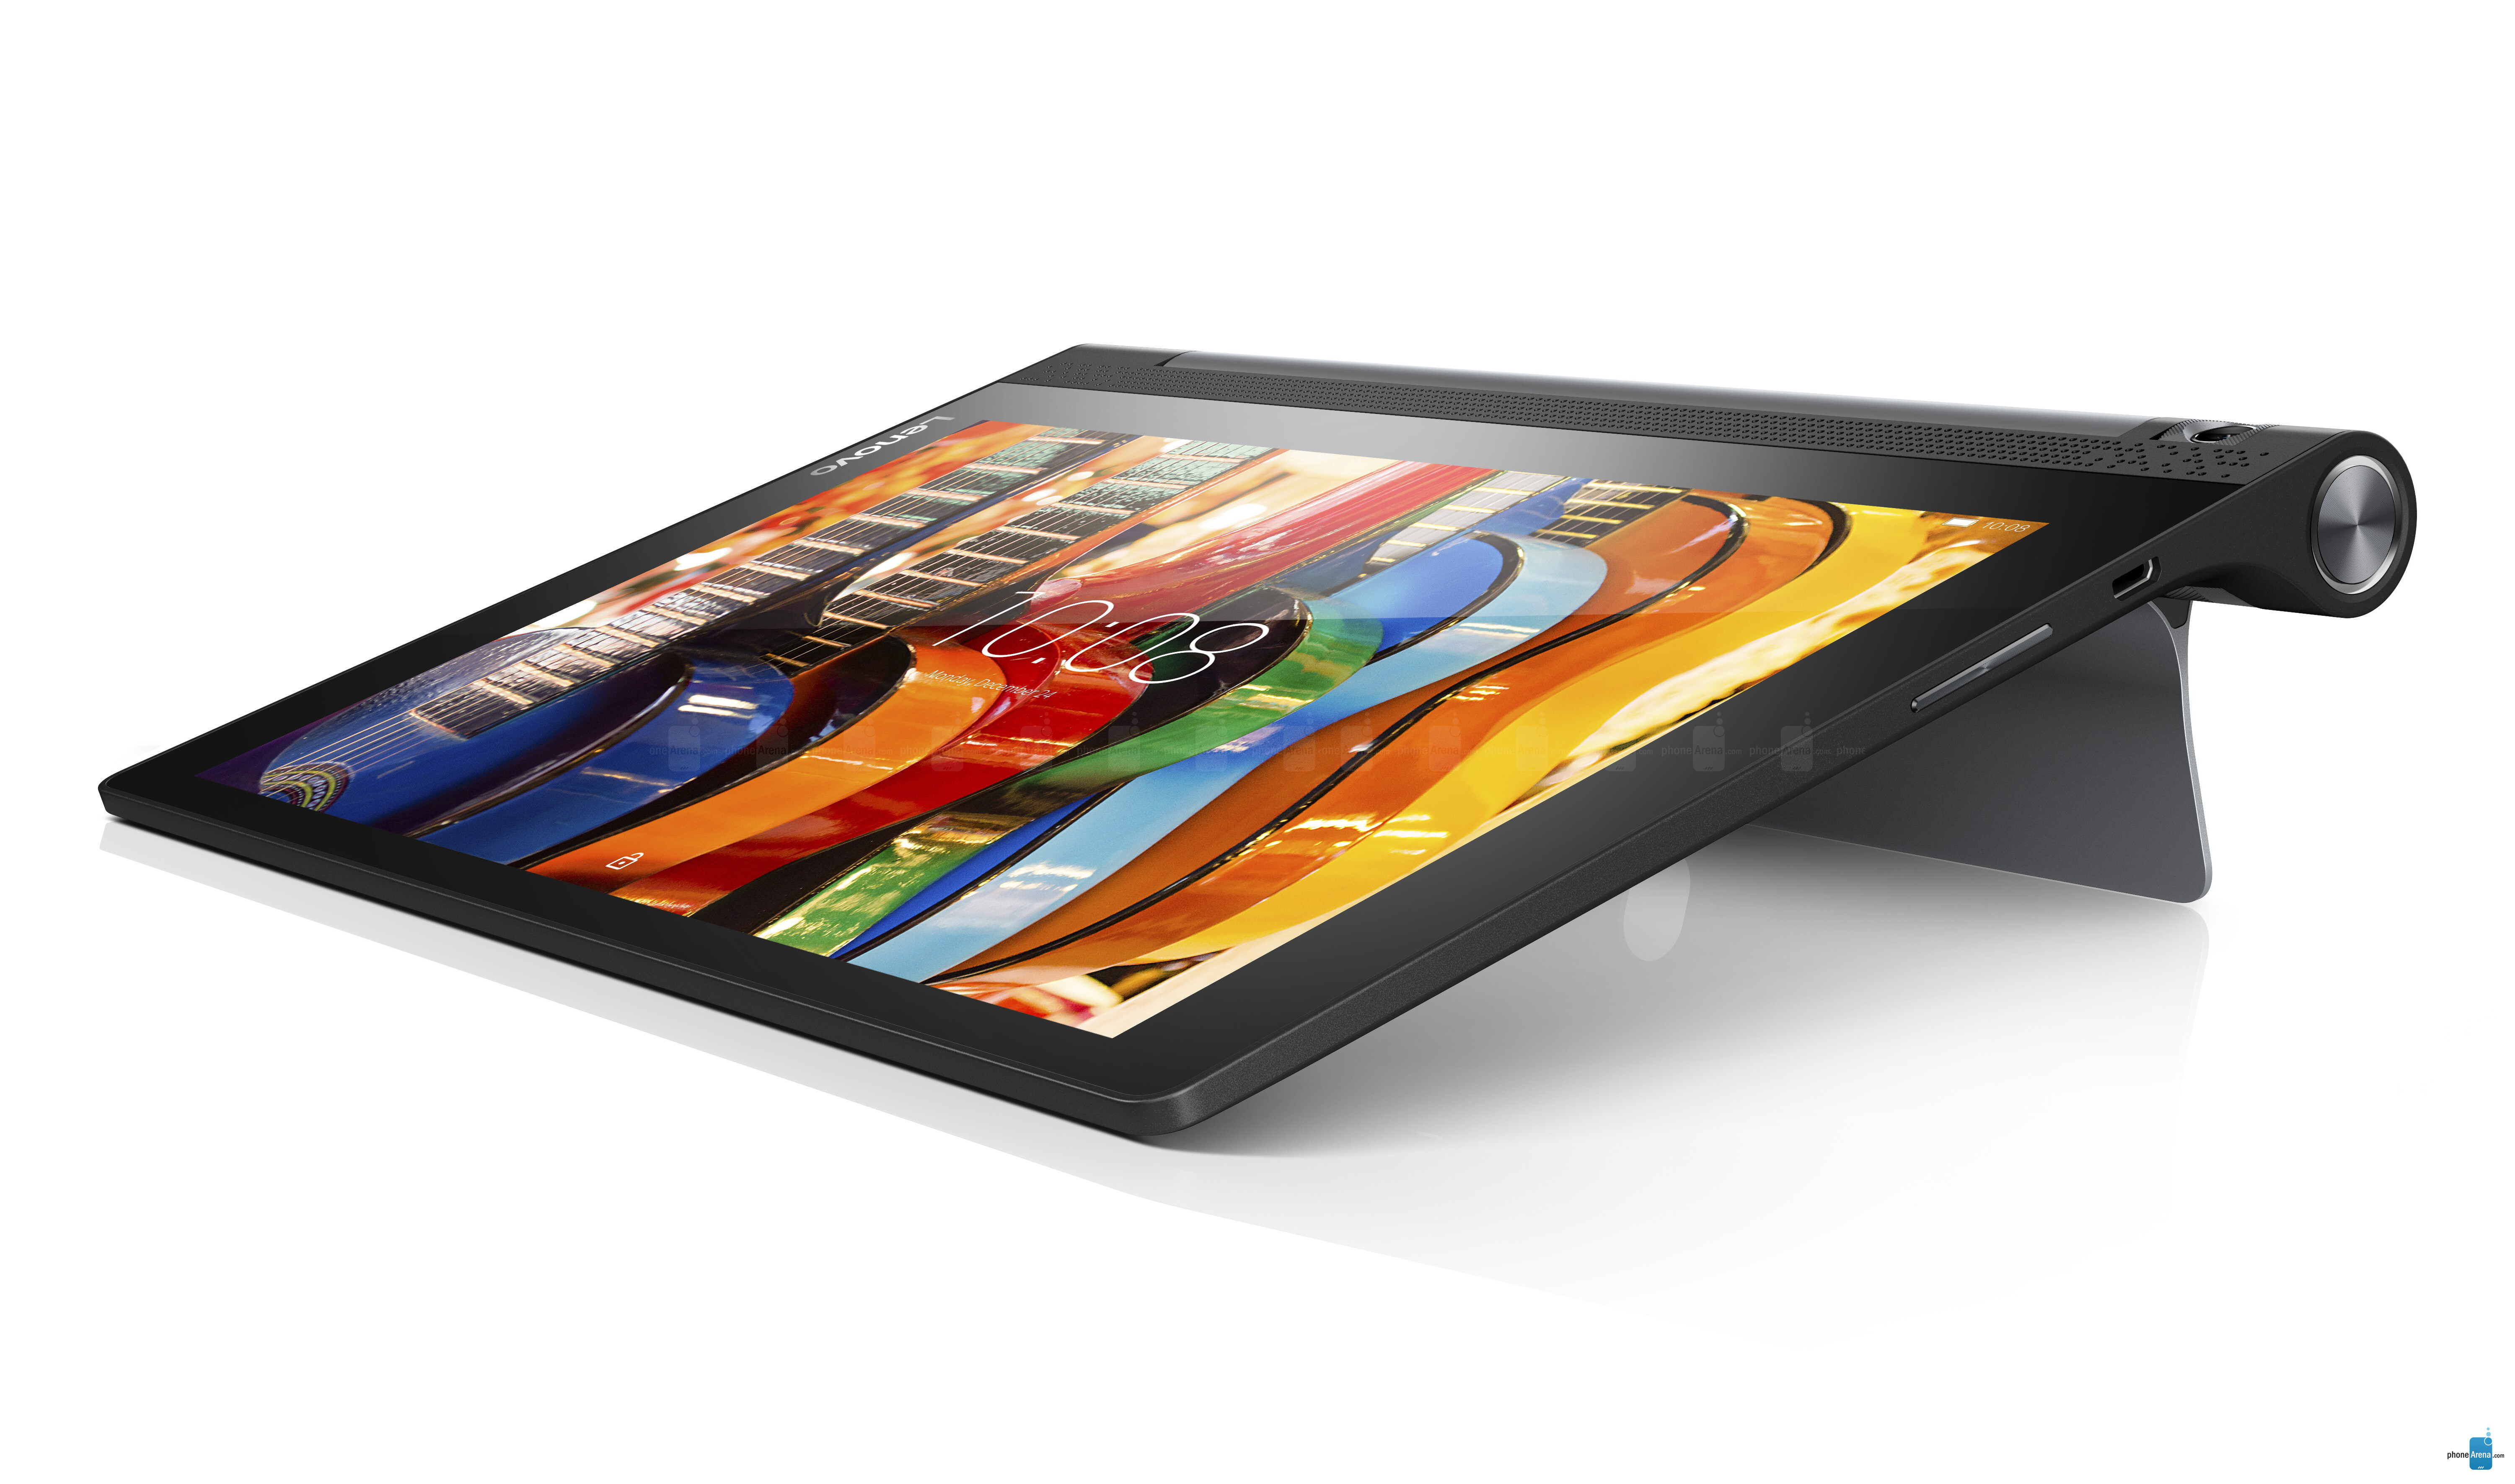 lenovo 10 inch tablet tb-x103f manual